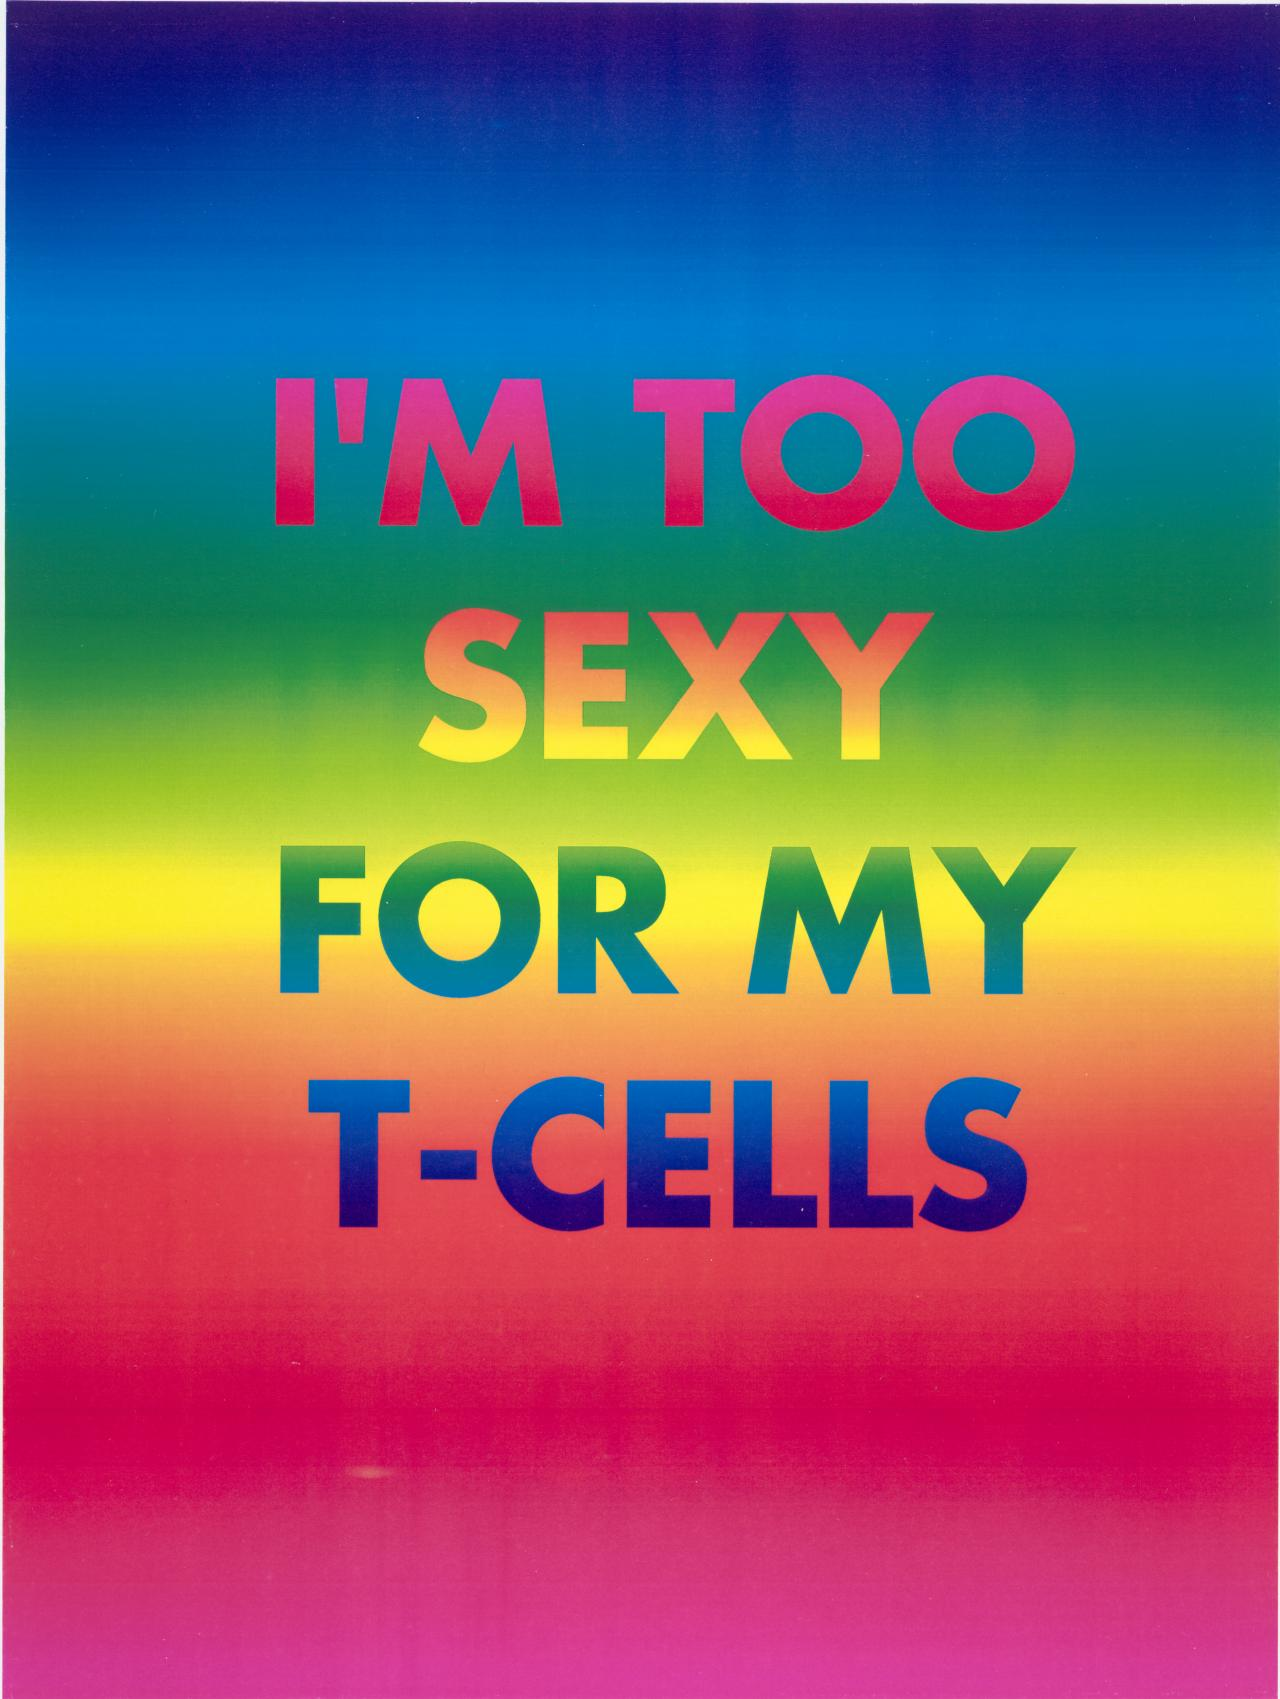 I'm too sexy for my T-cells